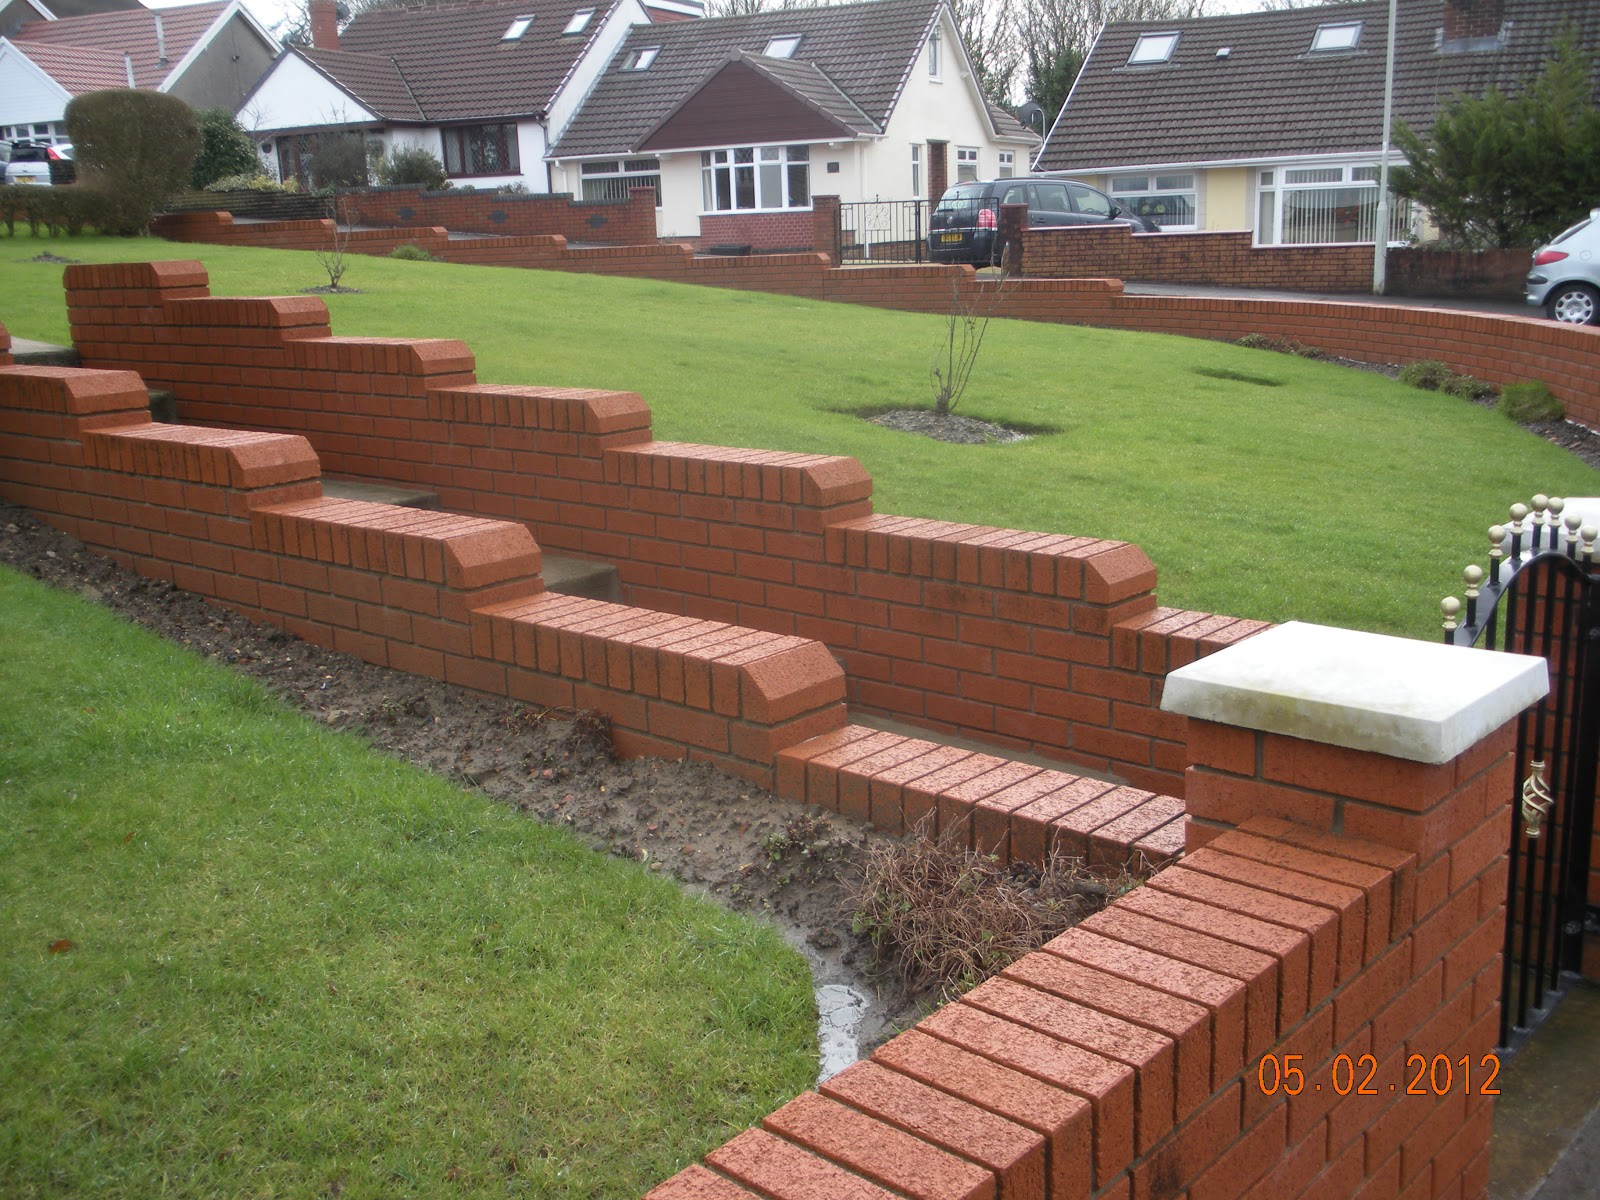 Cwm llynfi bricklaying 9 inch red face brick garden wall with 9 inch red face brick garden wall with brick on edge coping workwithnaturefo